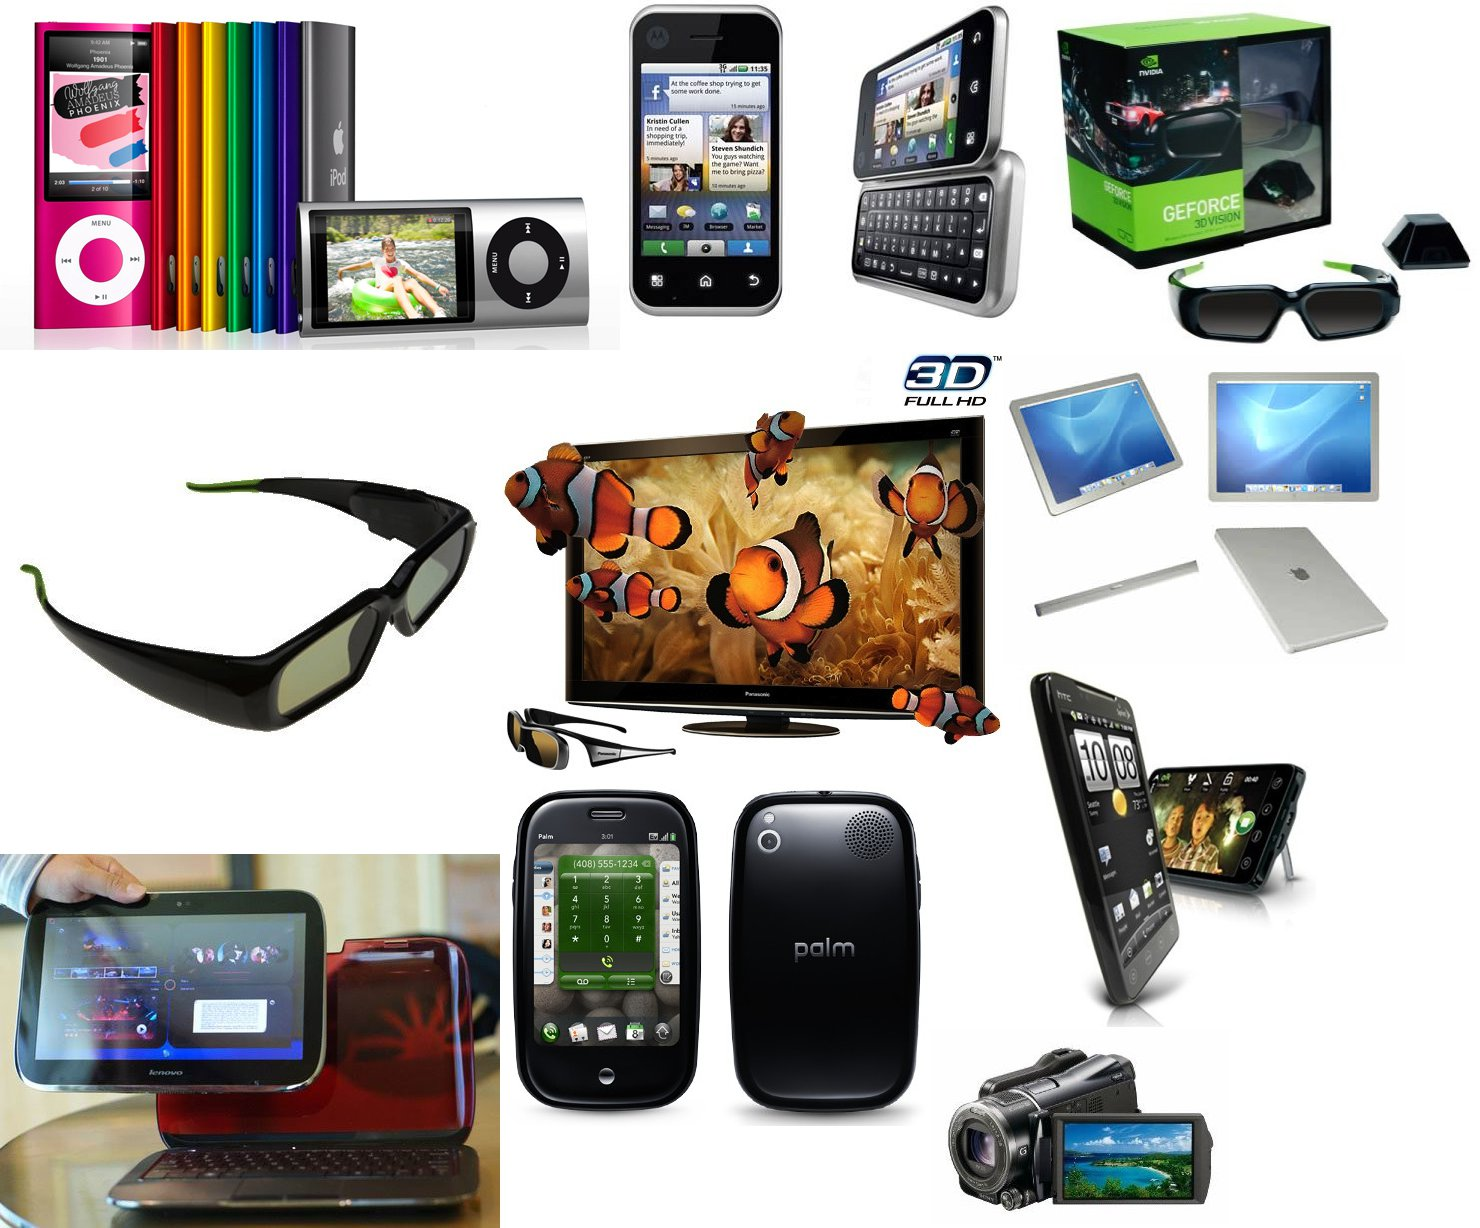 Gadgets